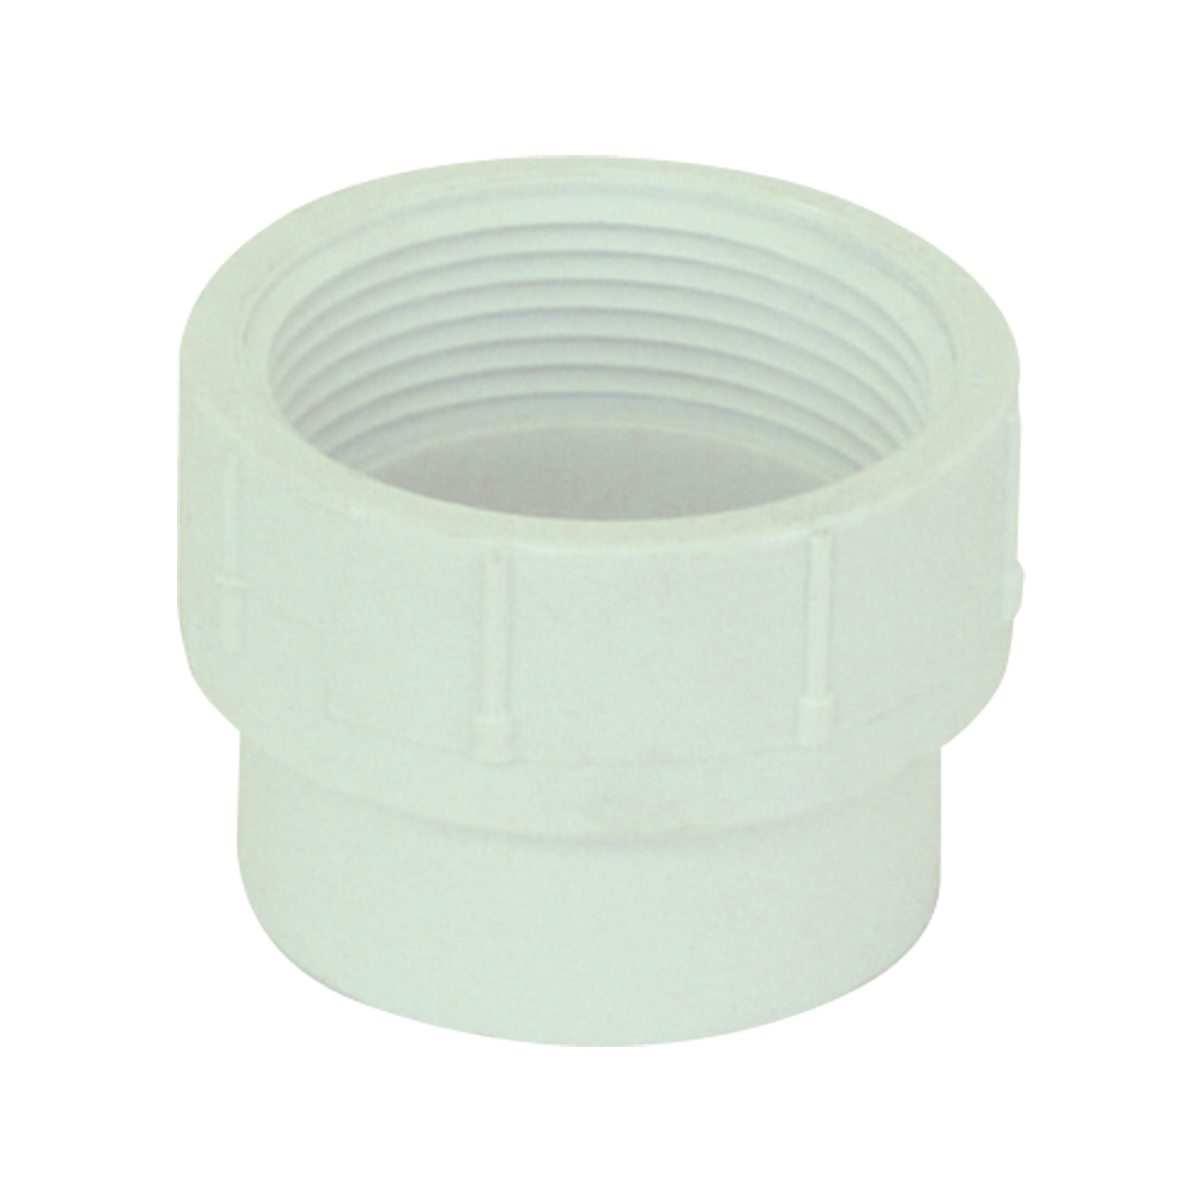 Pvc Dwv Fittings Supplies Contractor Access